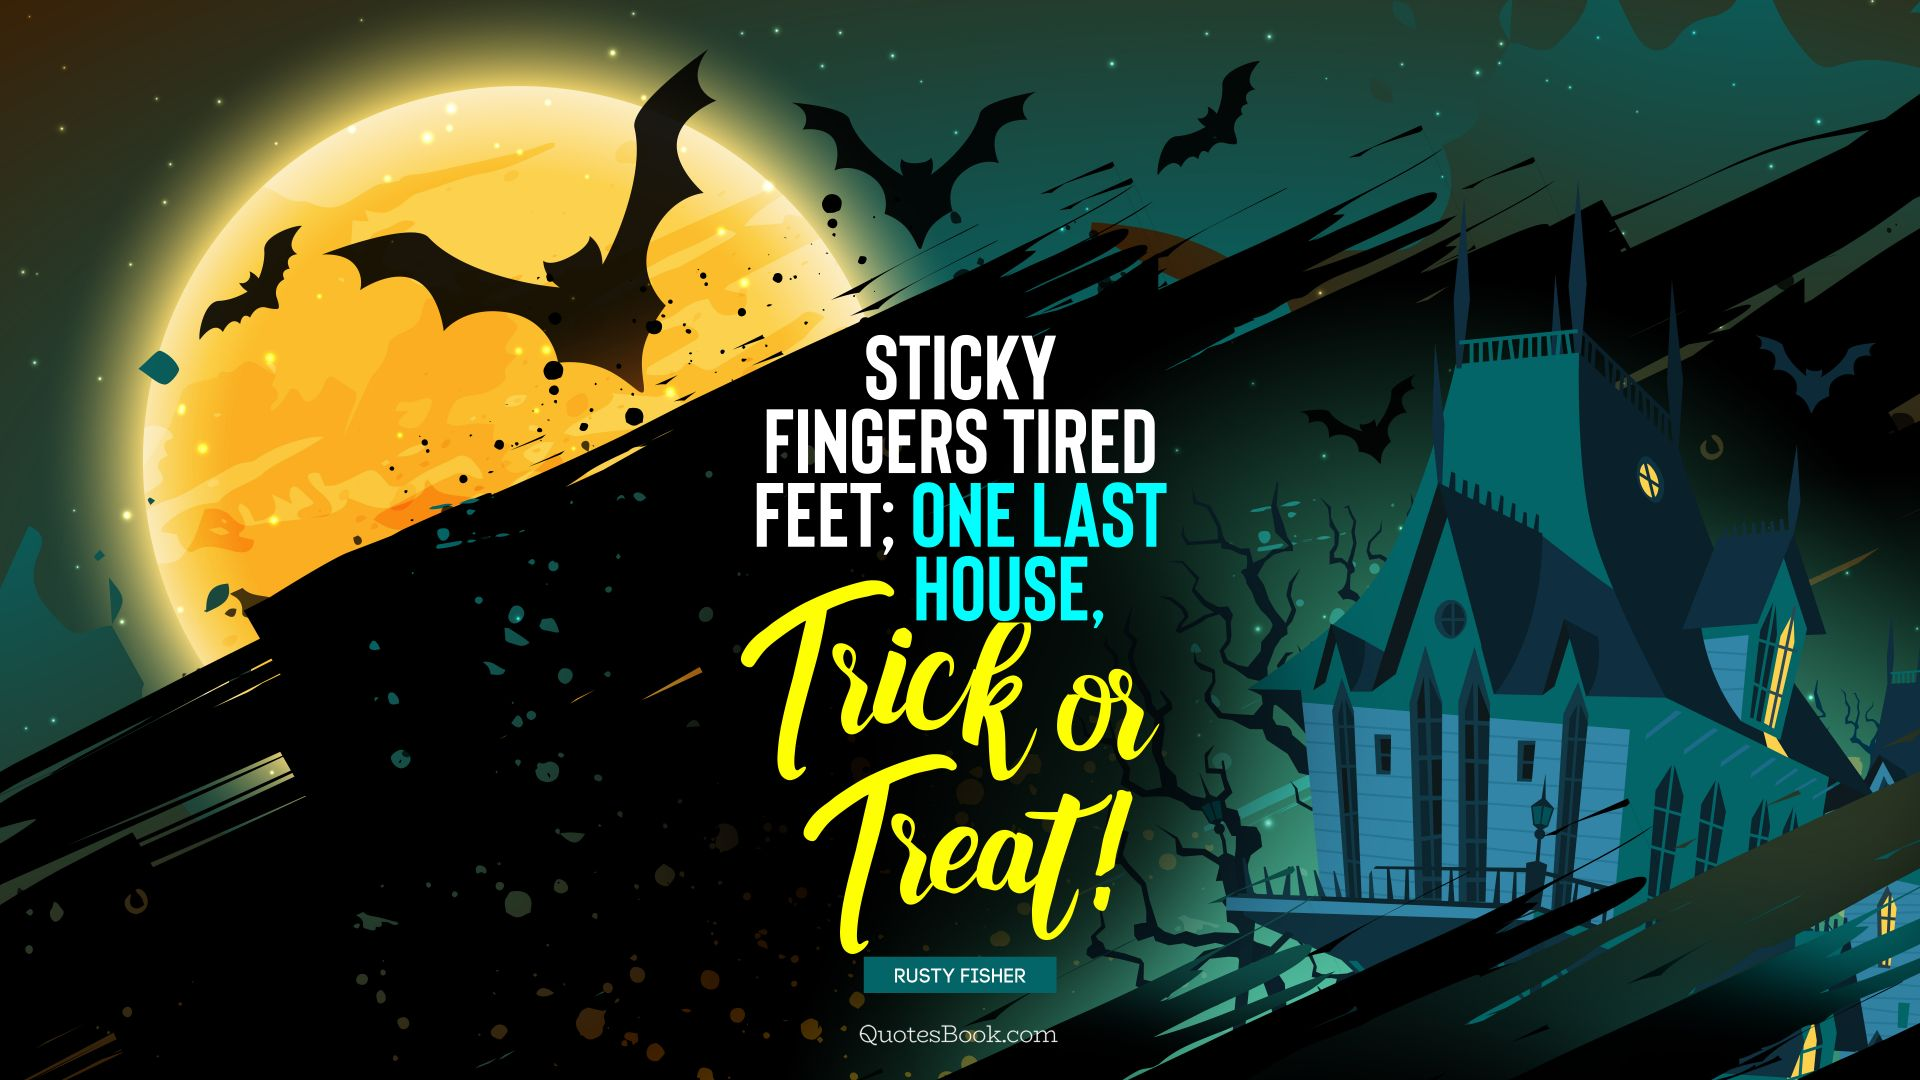 Sticky fingers tired feet; One last house, trick or treat!. - Quote by Rusty Fischer